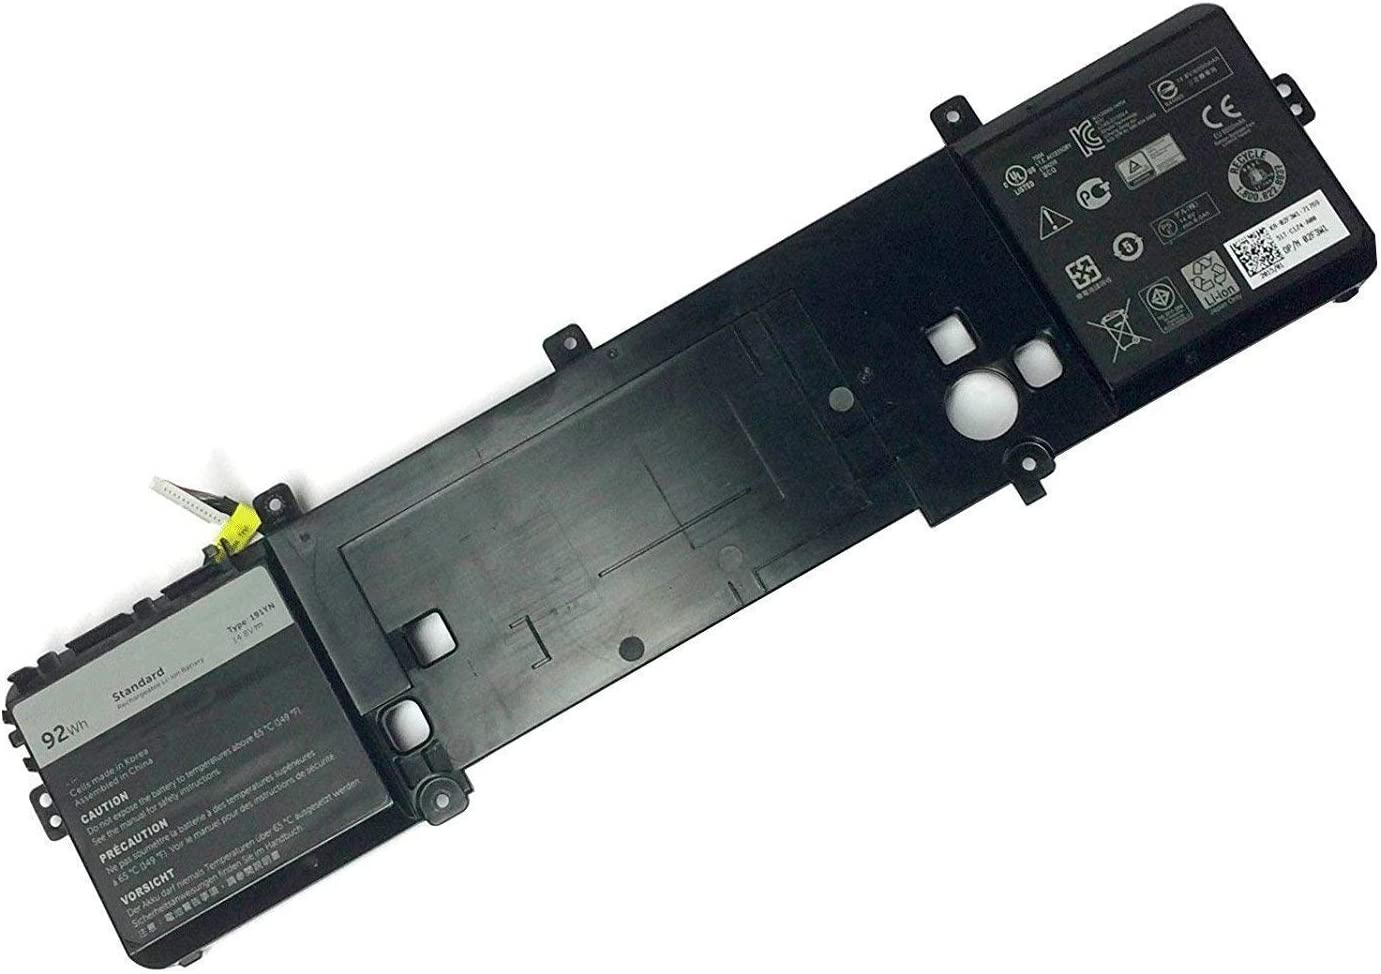 FLIW 191YN Replacement Battery Compatible with Dell Alienware 15 R1 R2 Series ALW15ED 2F3W1 [14.8V 92Wh]